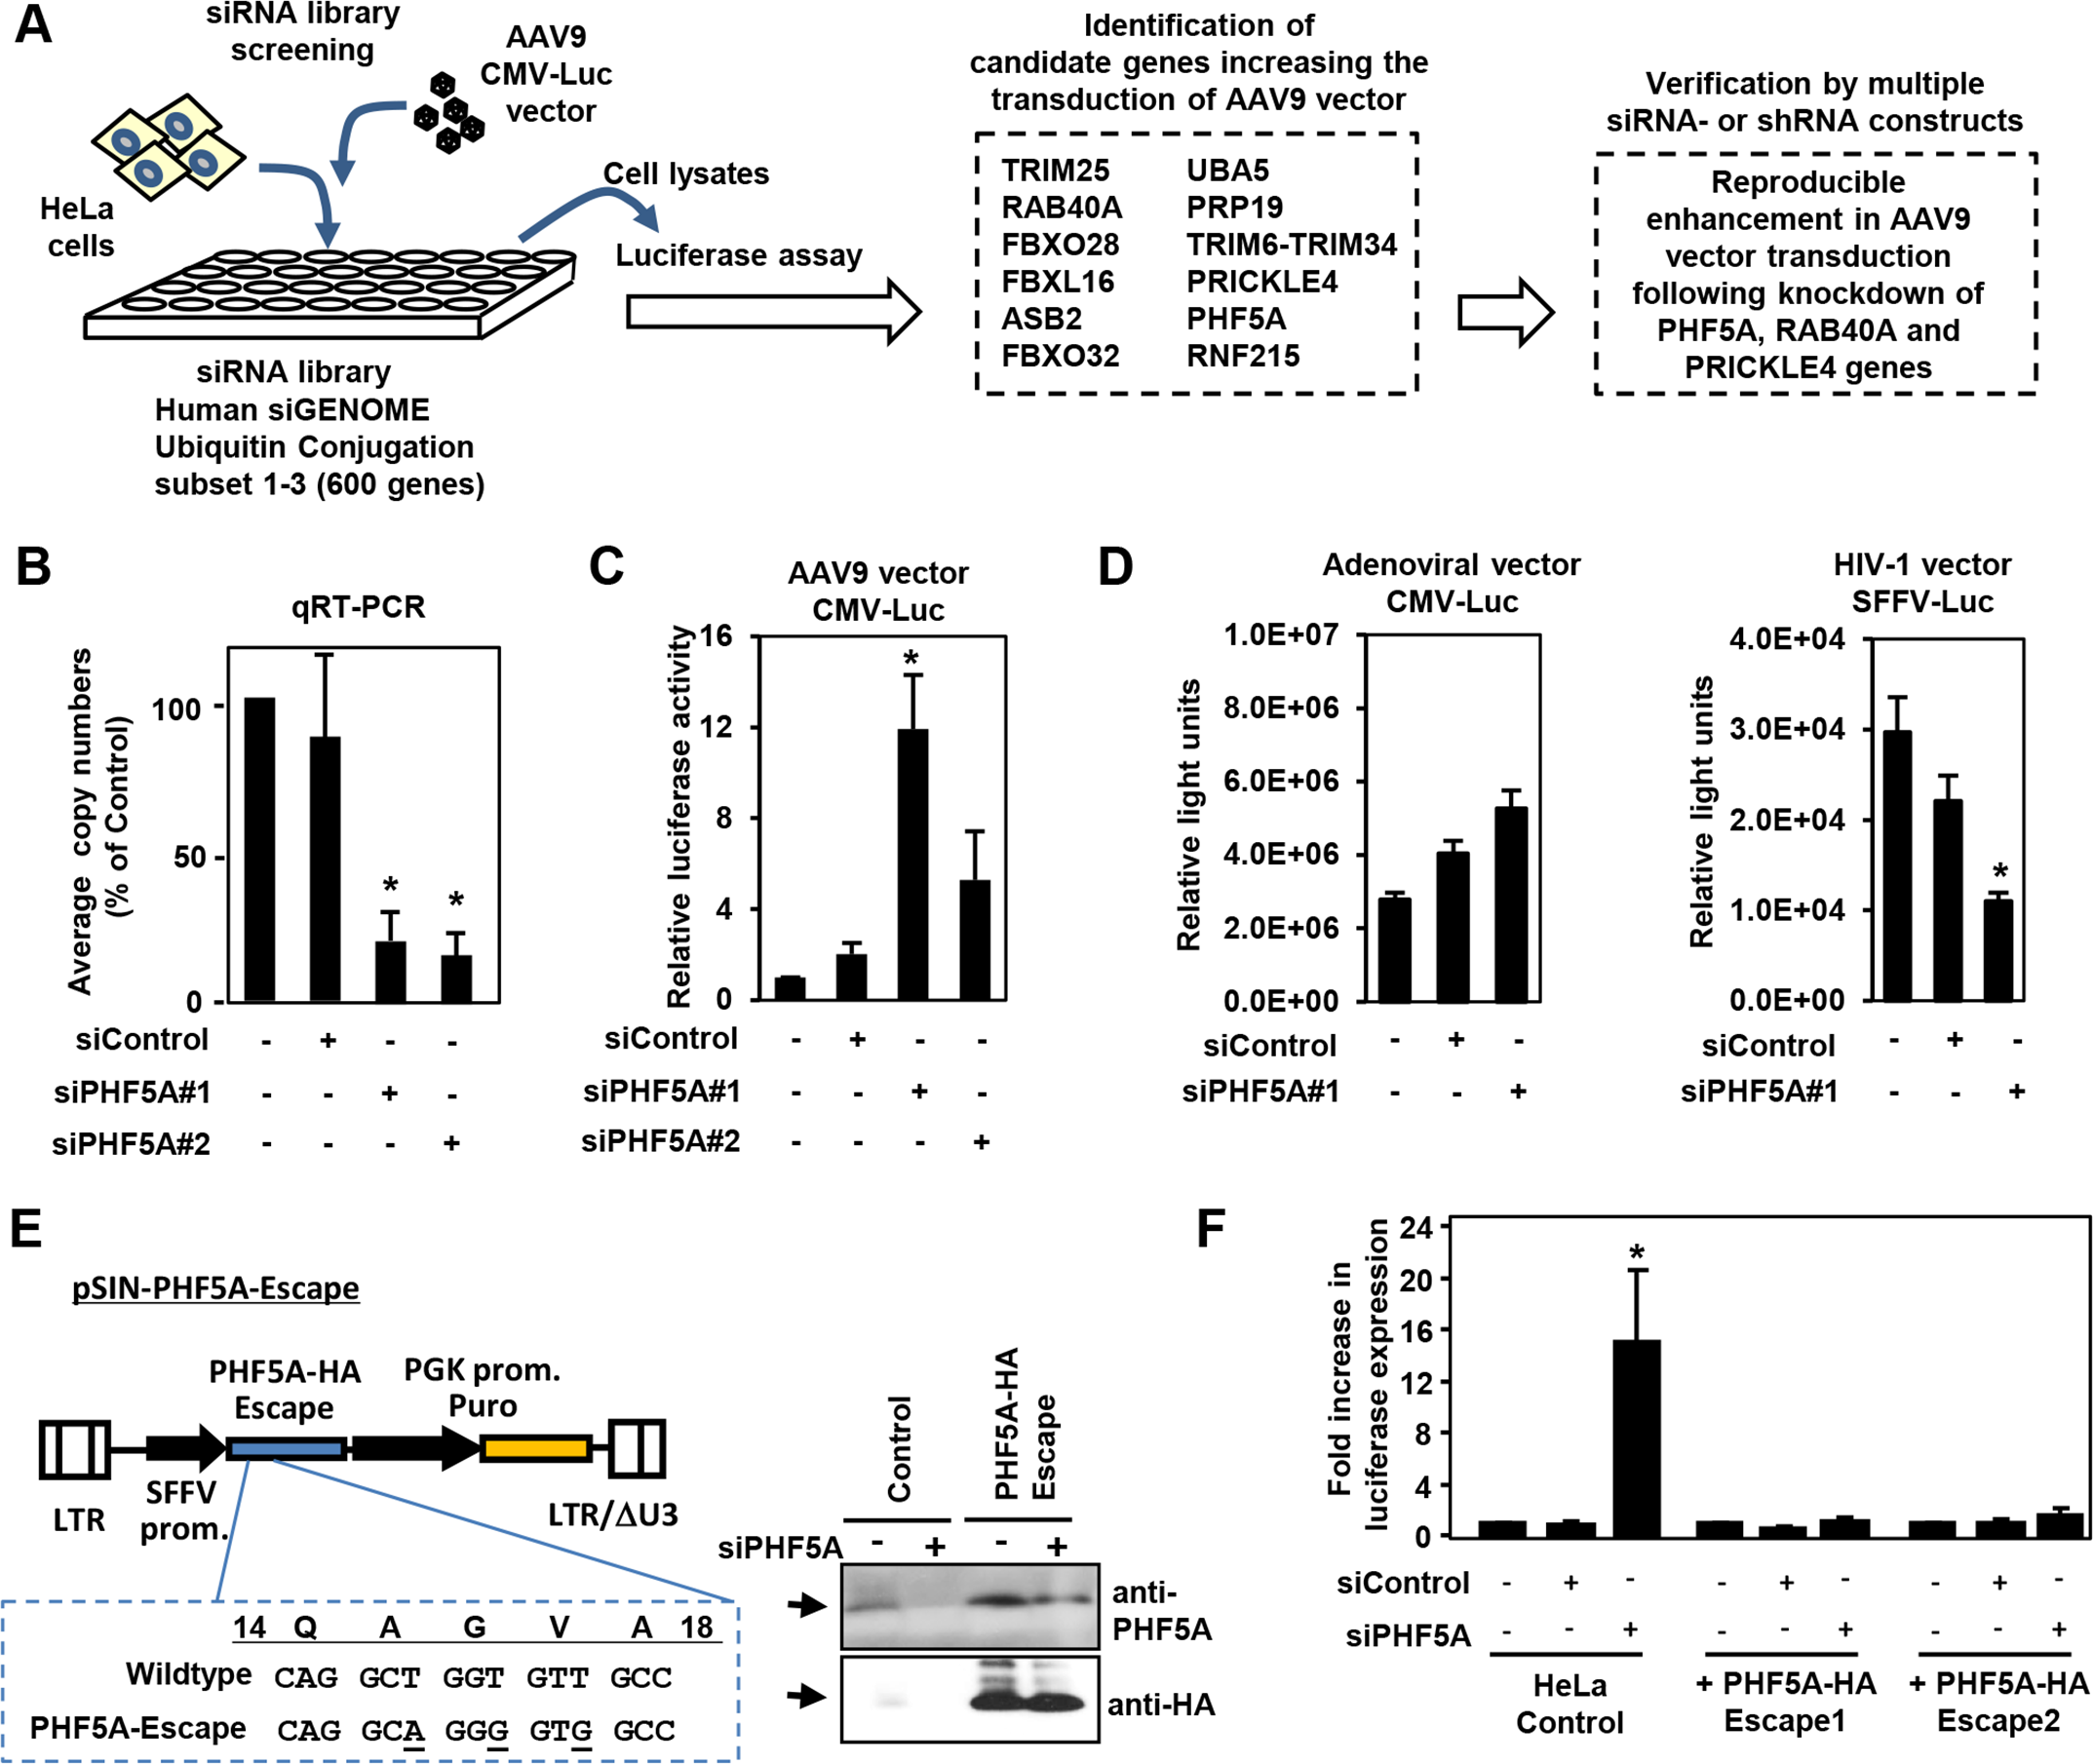 Screening of the siRNA library for proteasomal pathway genes identifies PHF5A as a factor blocking the transduction by AAV9 vector.